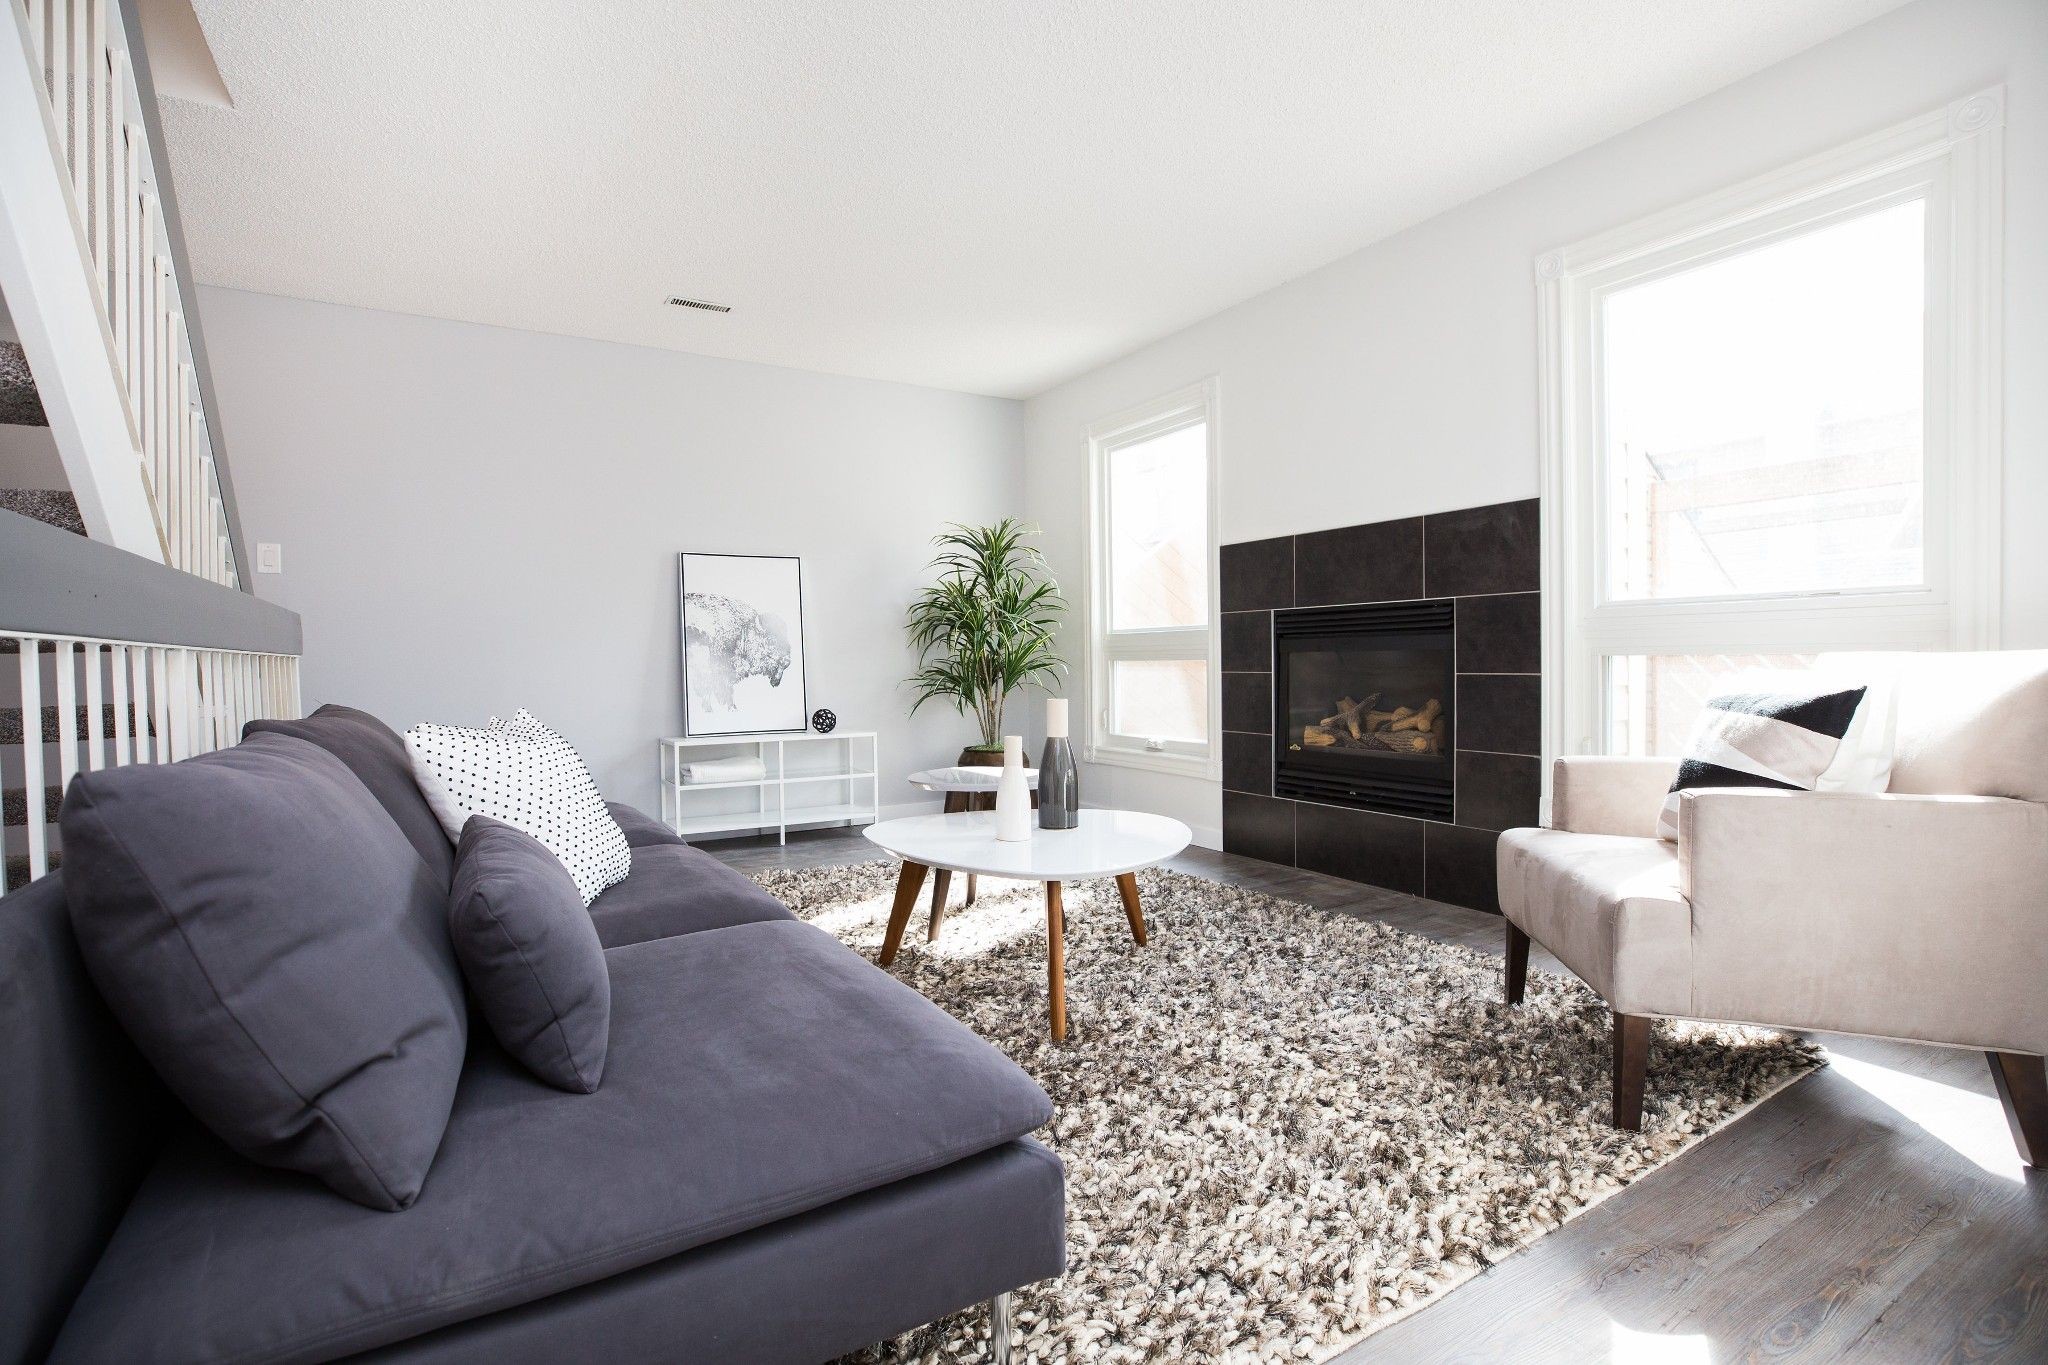 Main Photo: 39 151 East Greenway Crescent in Winnipeg: Crestview House for sale (5H)  : MLS®# 1811375